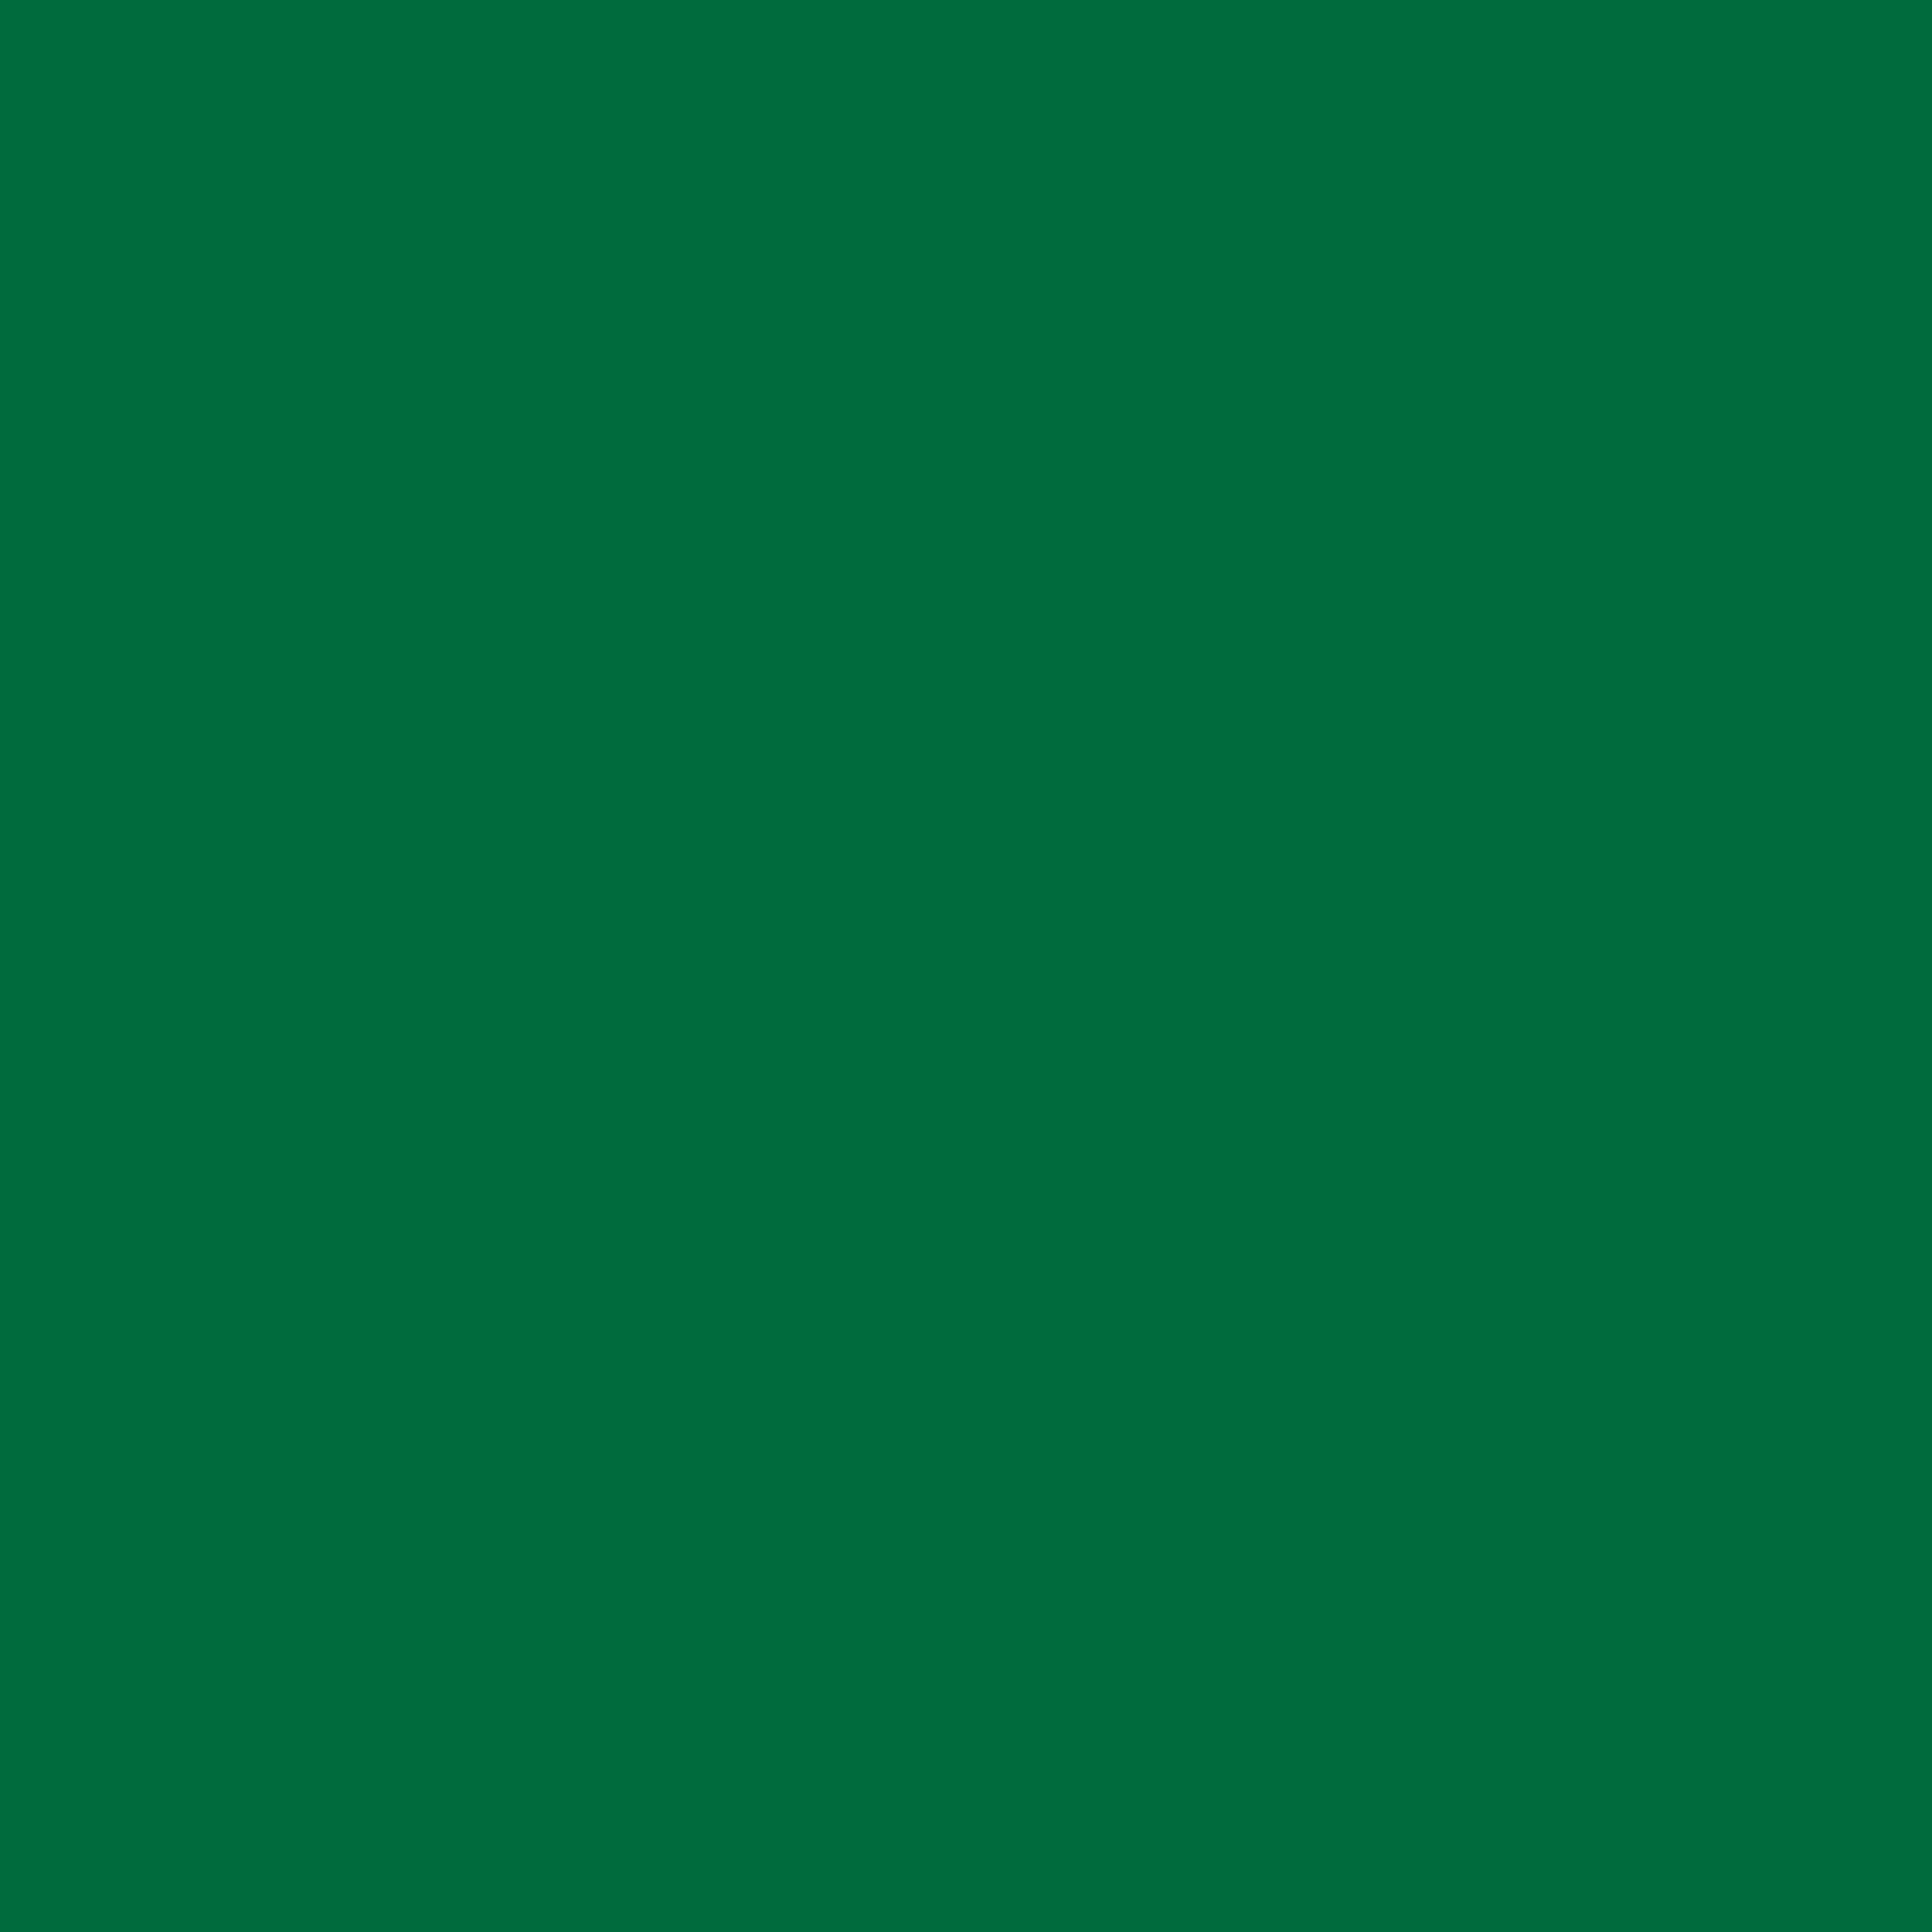 2732x2732 Cadmium Green Solid Color Background